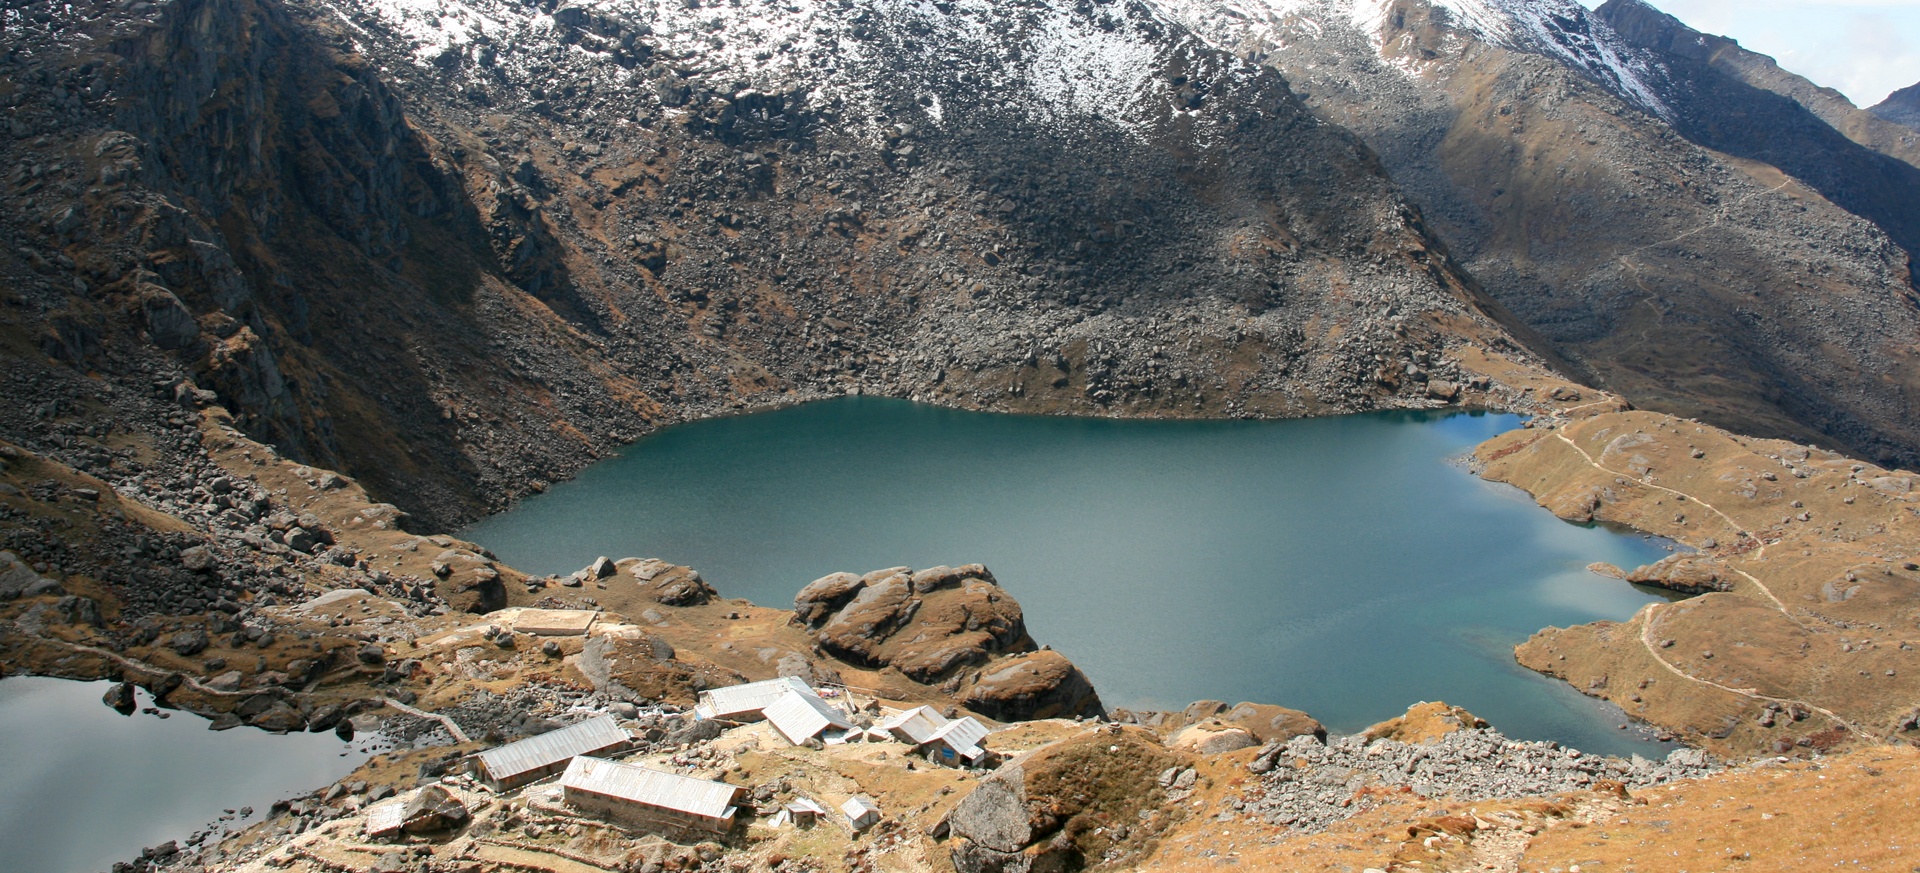 Langtang,-Gosainkunda-and-Helambu-Trek